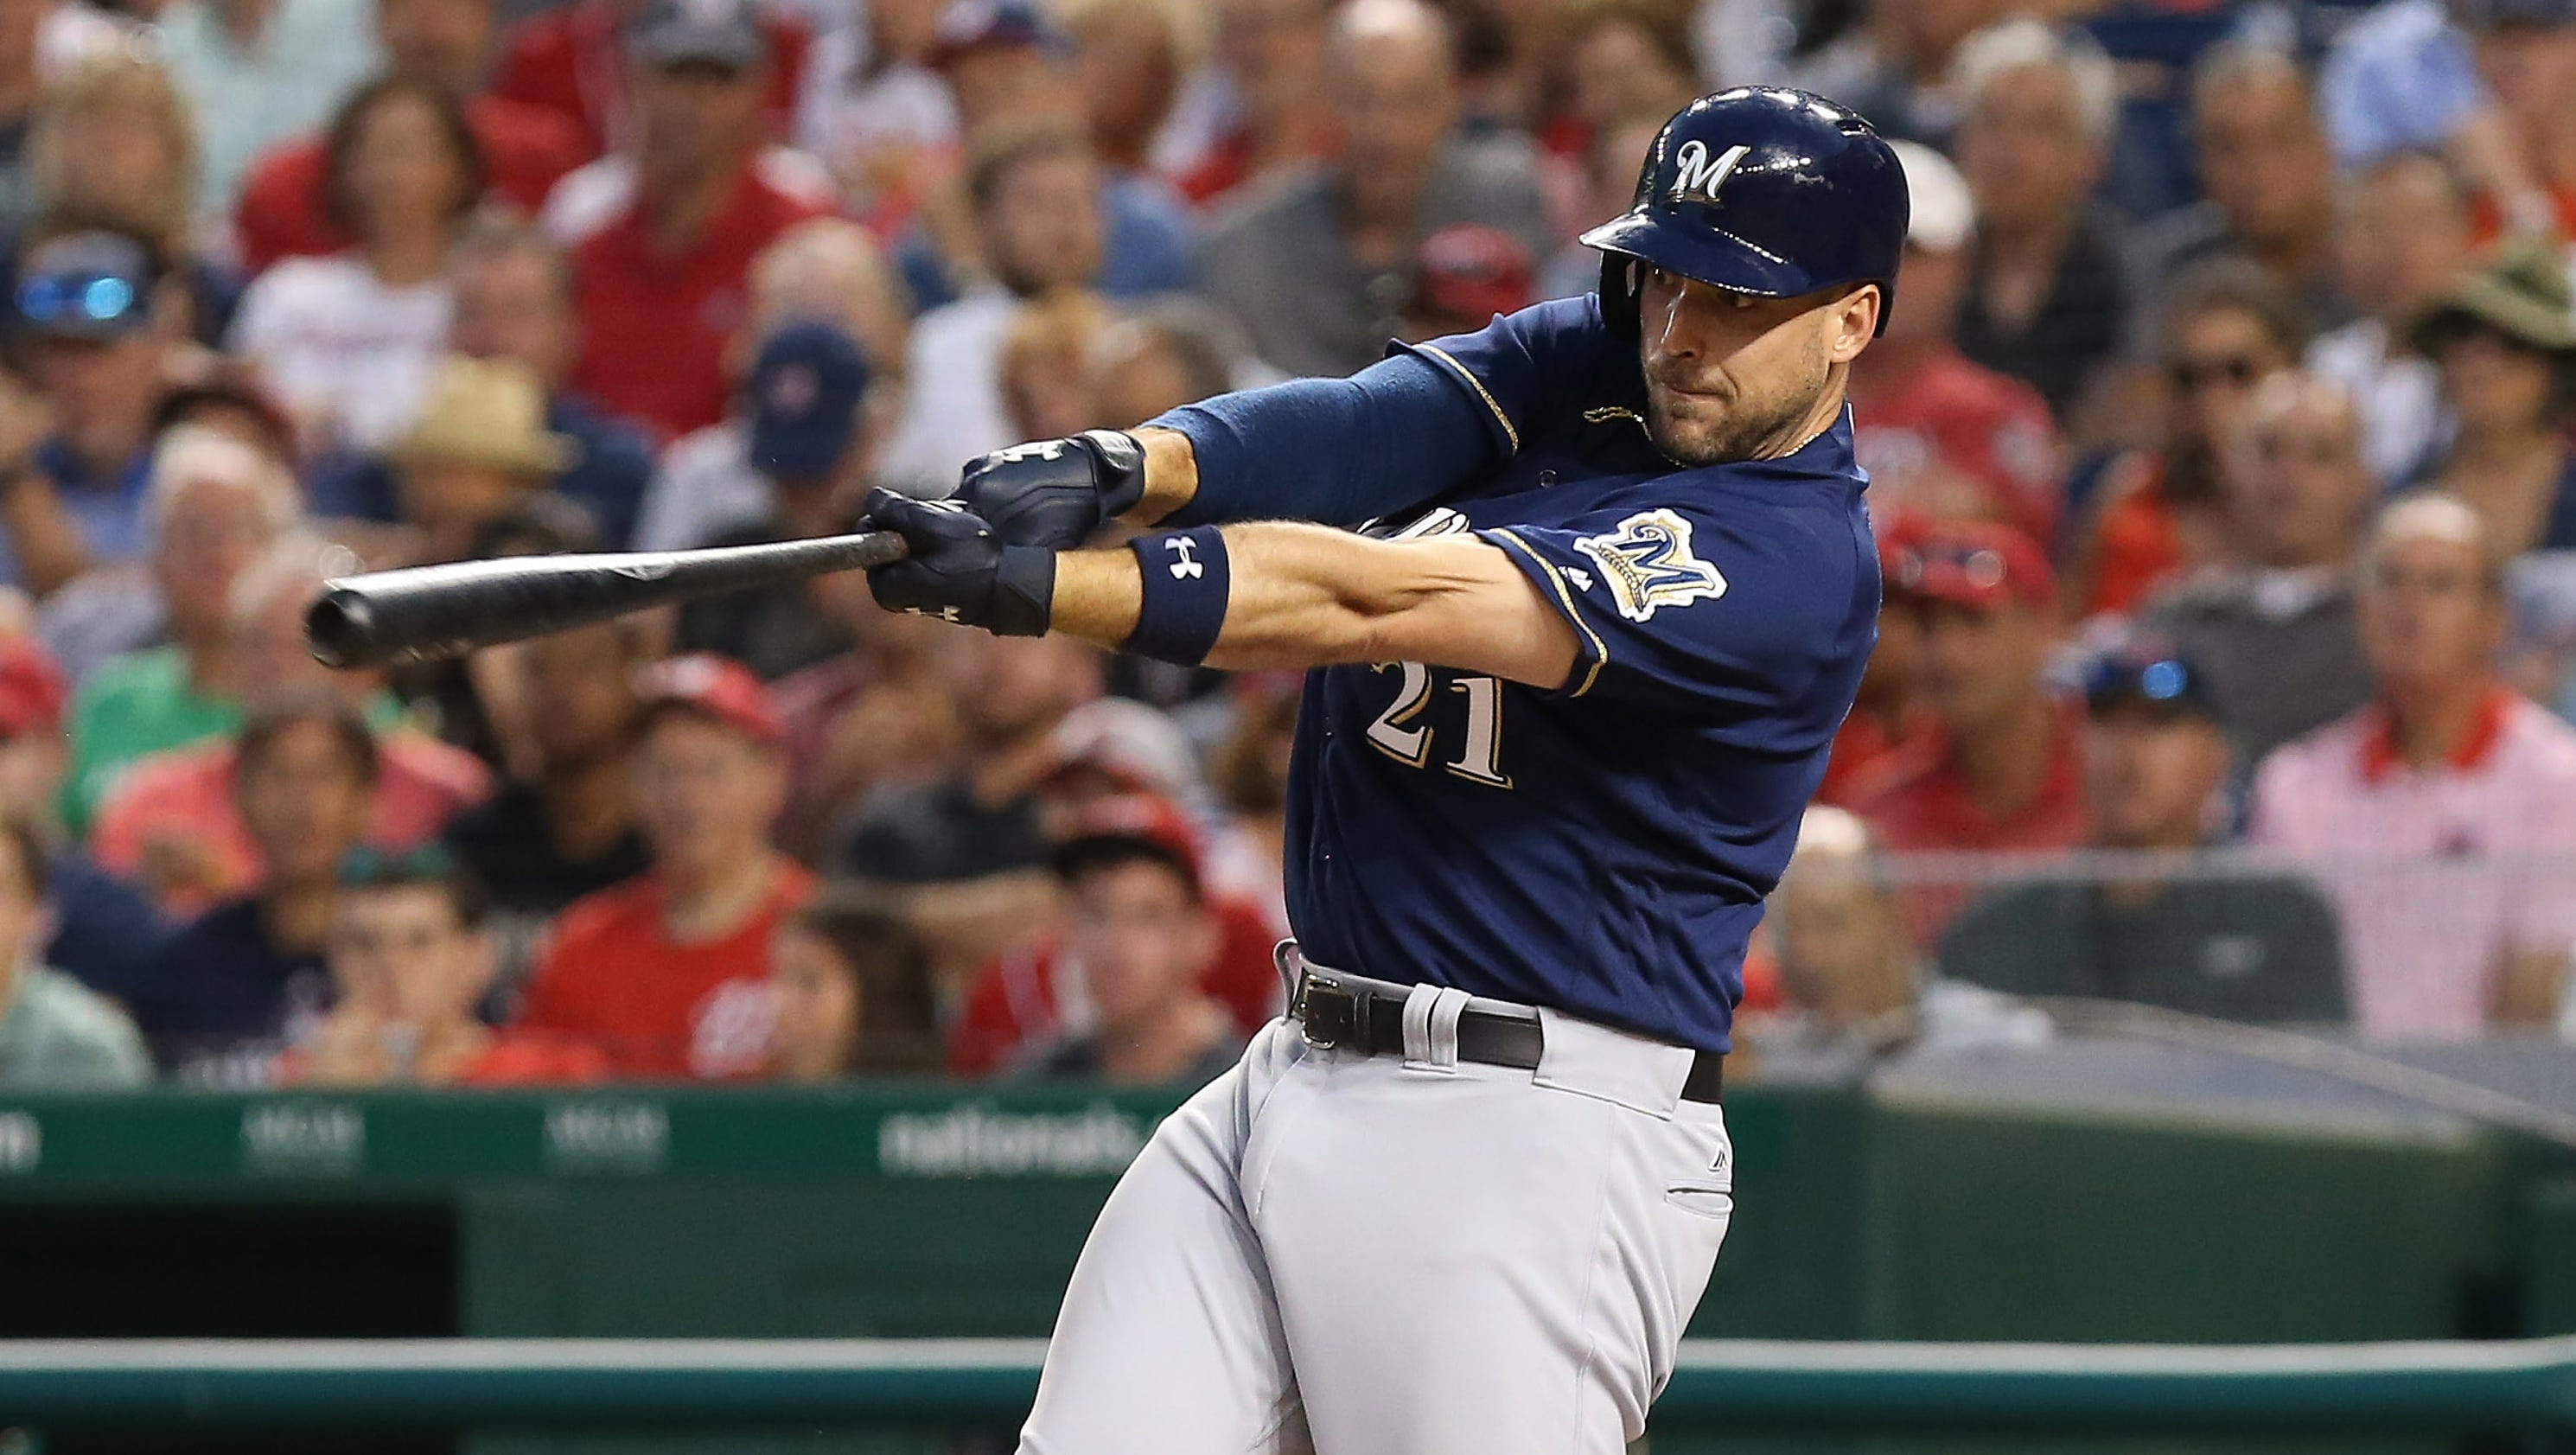 636366178958062193-brewers26p1